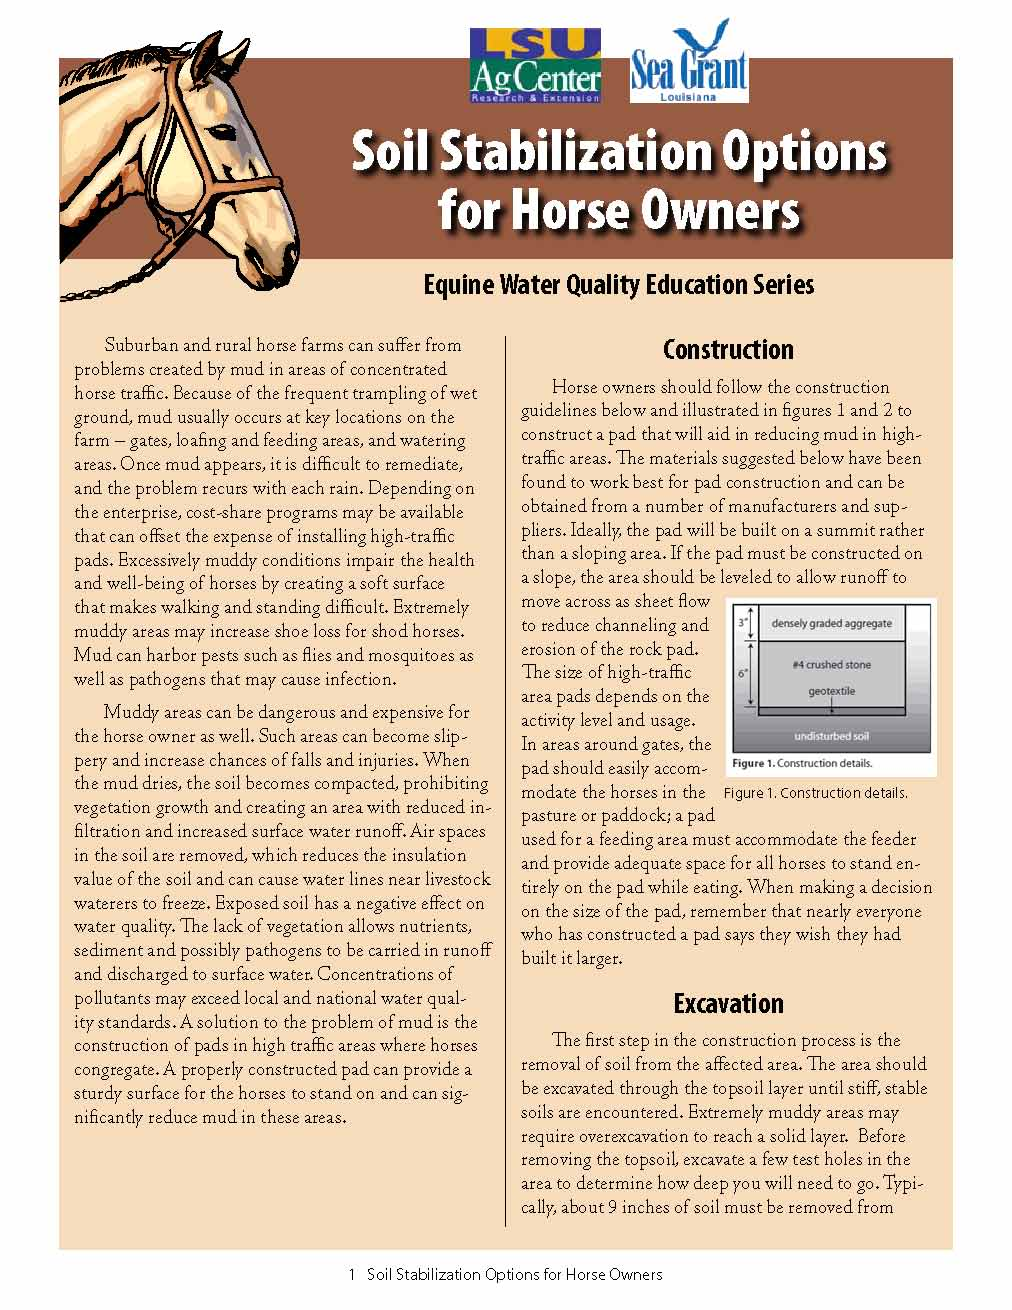 Soil Stabilization Options for Horse Owners